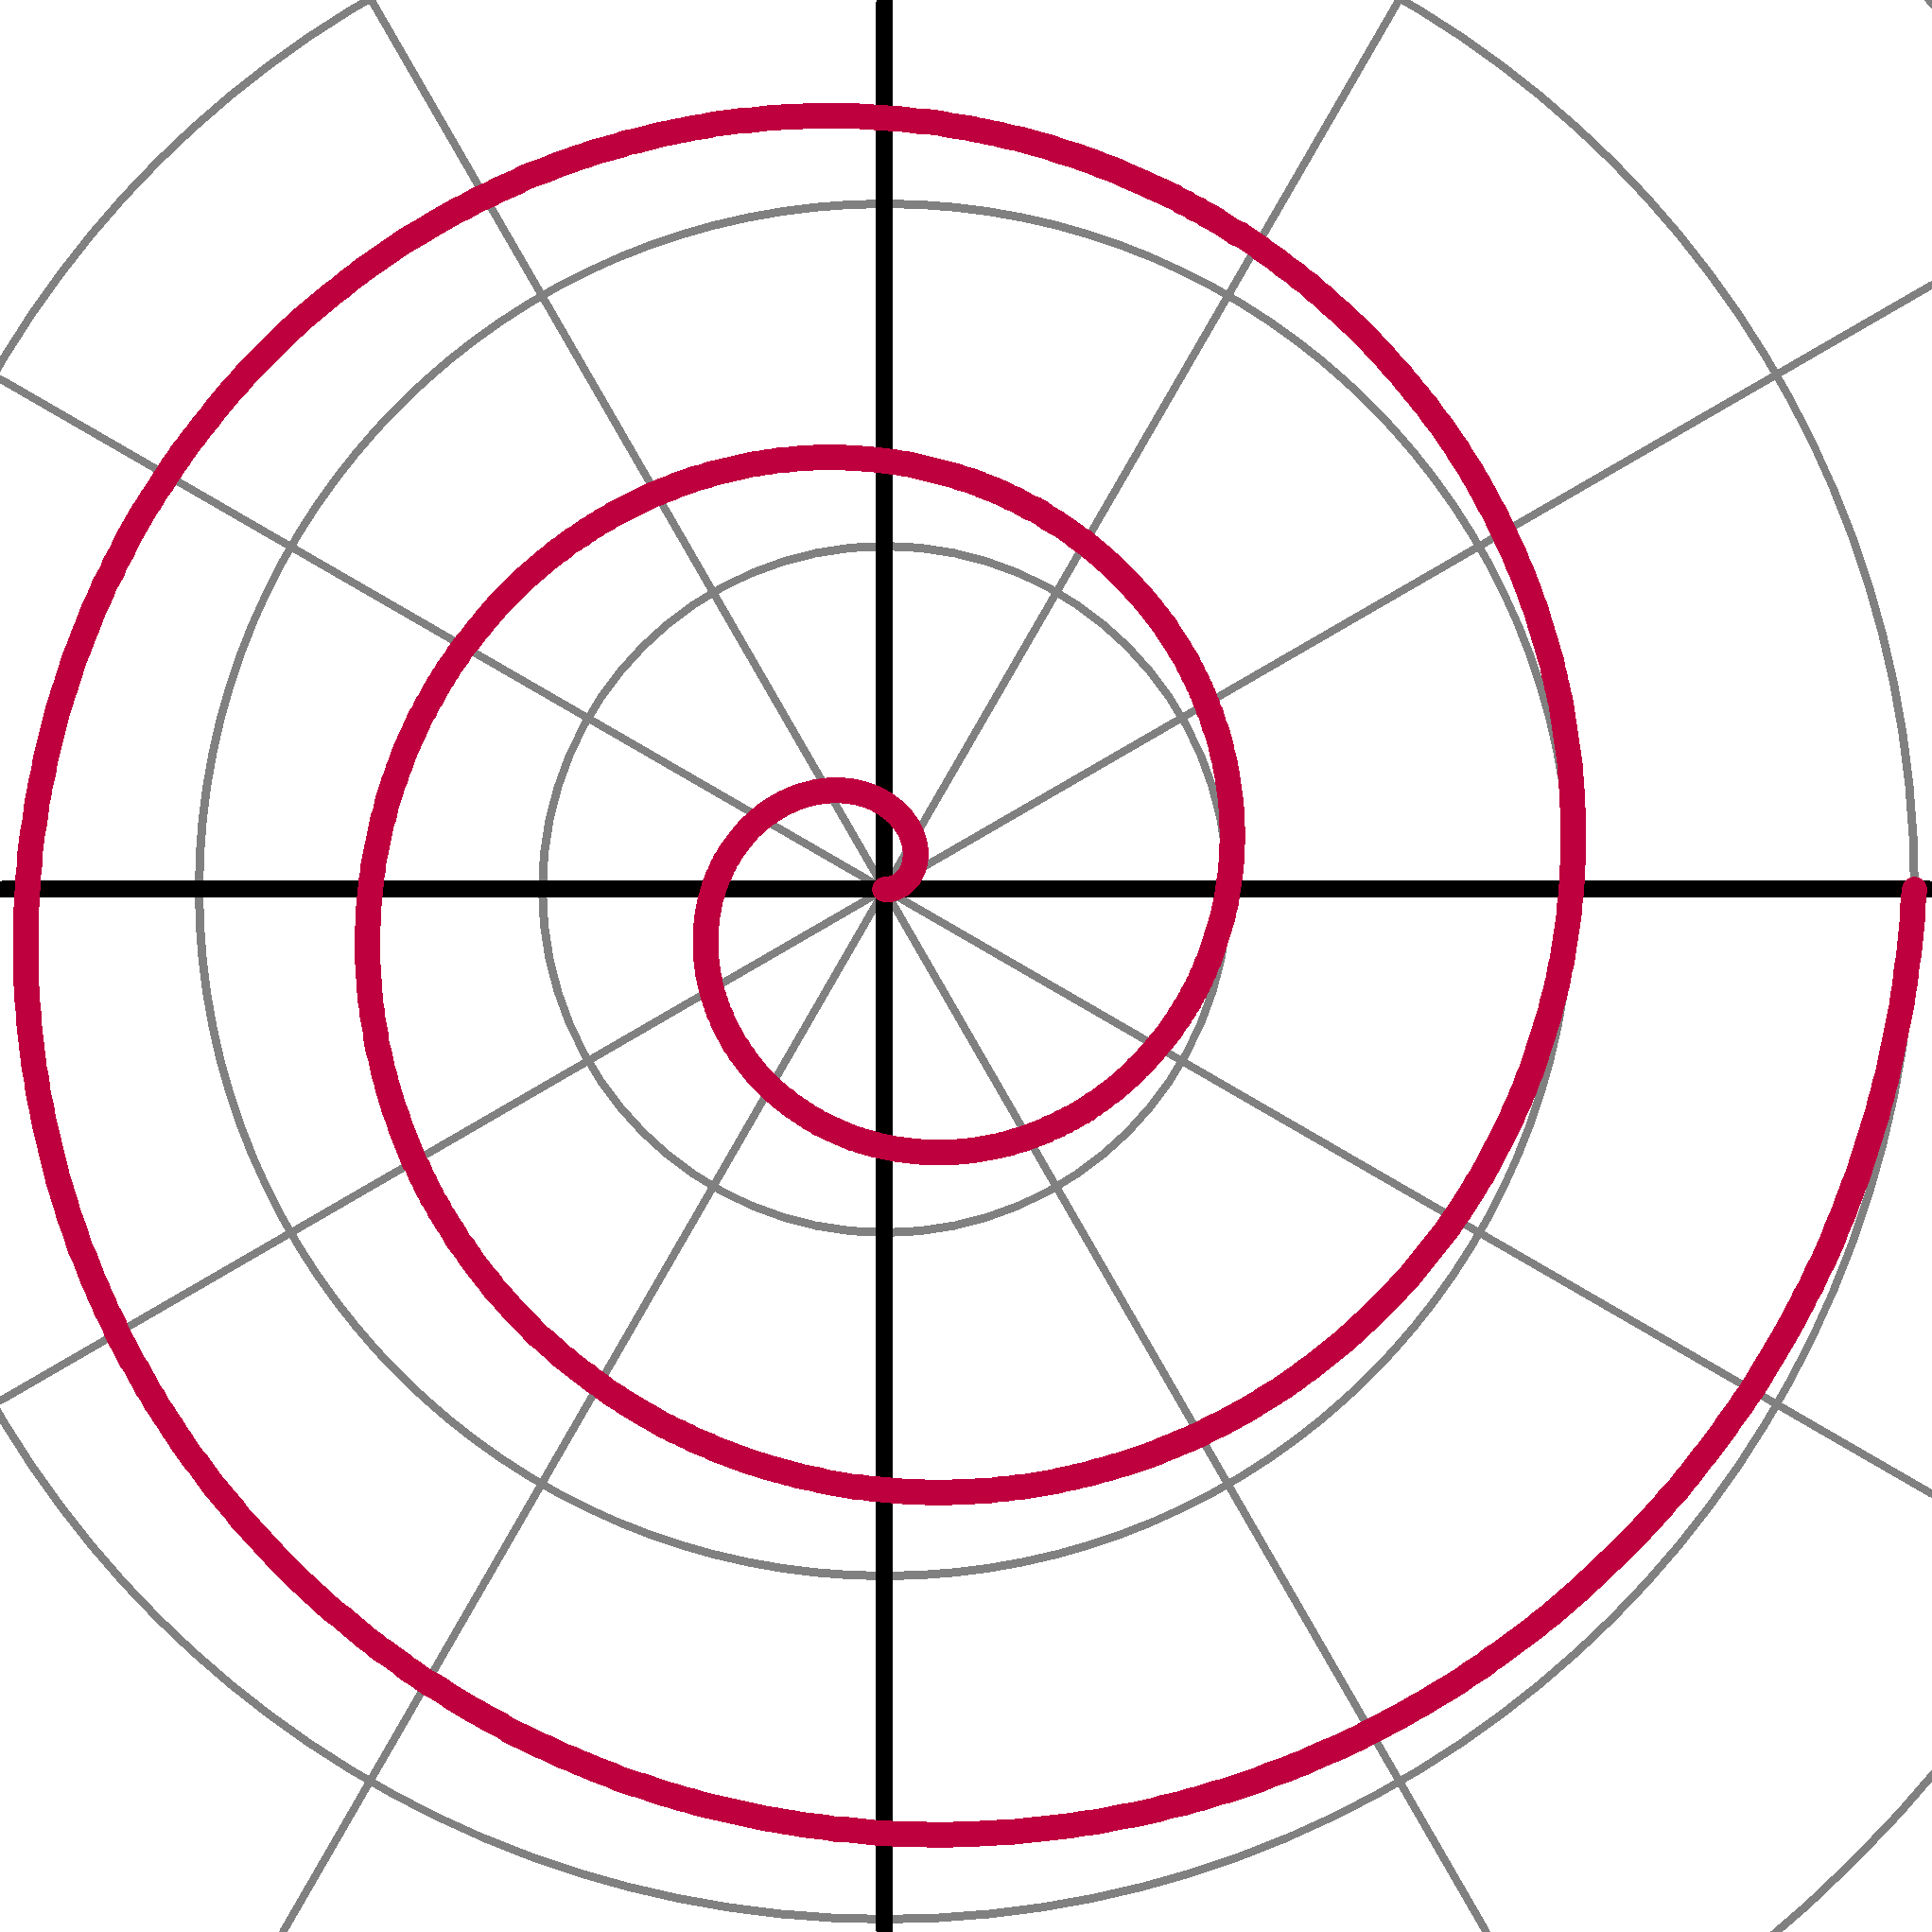 2043x2043 Filearchimedian Spiral.png